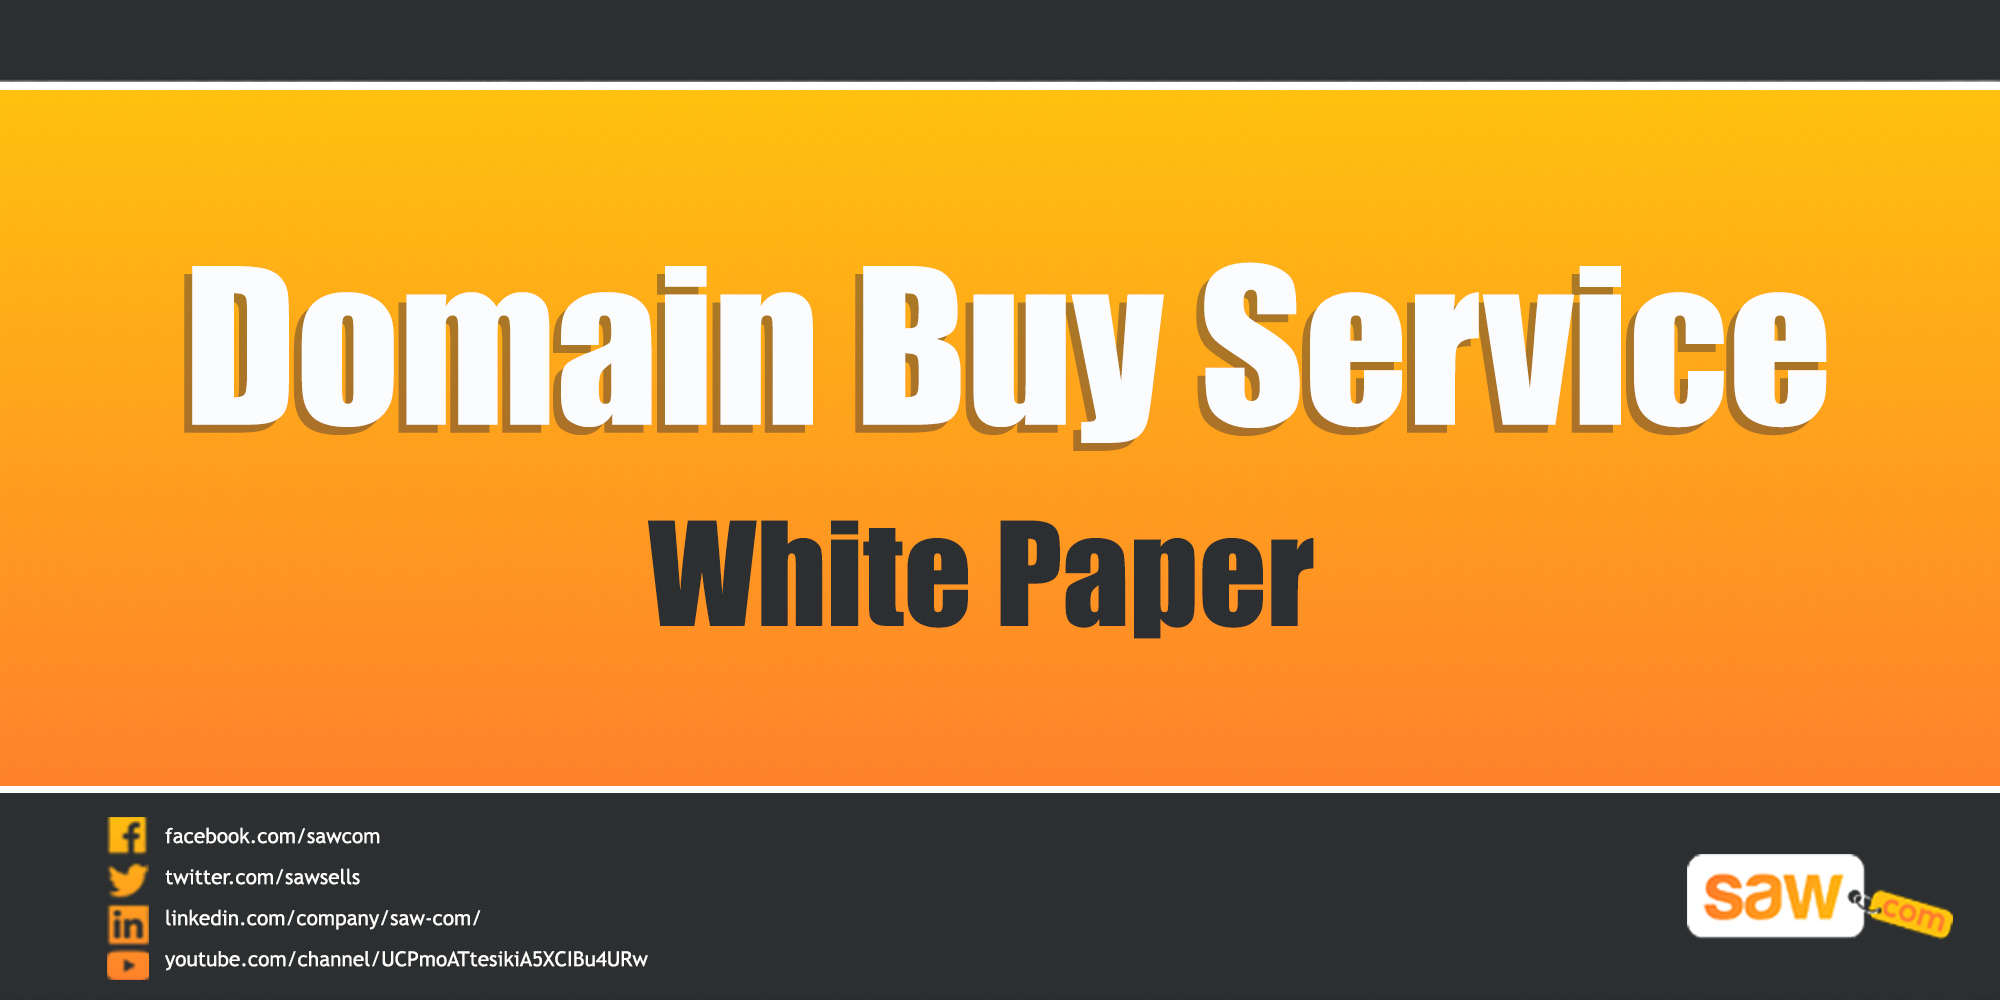 Domain Buy Service White Paper